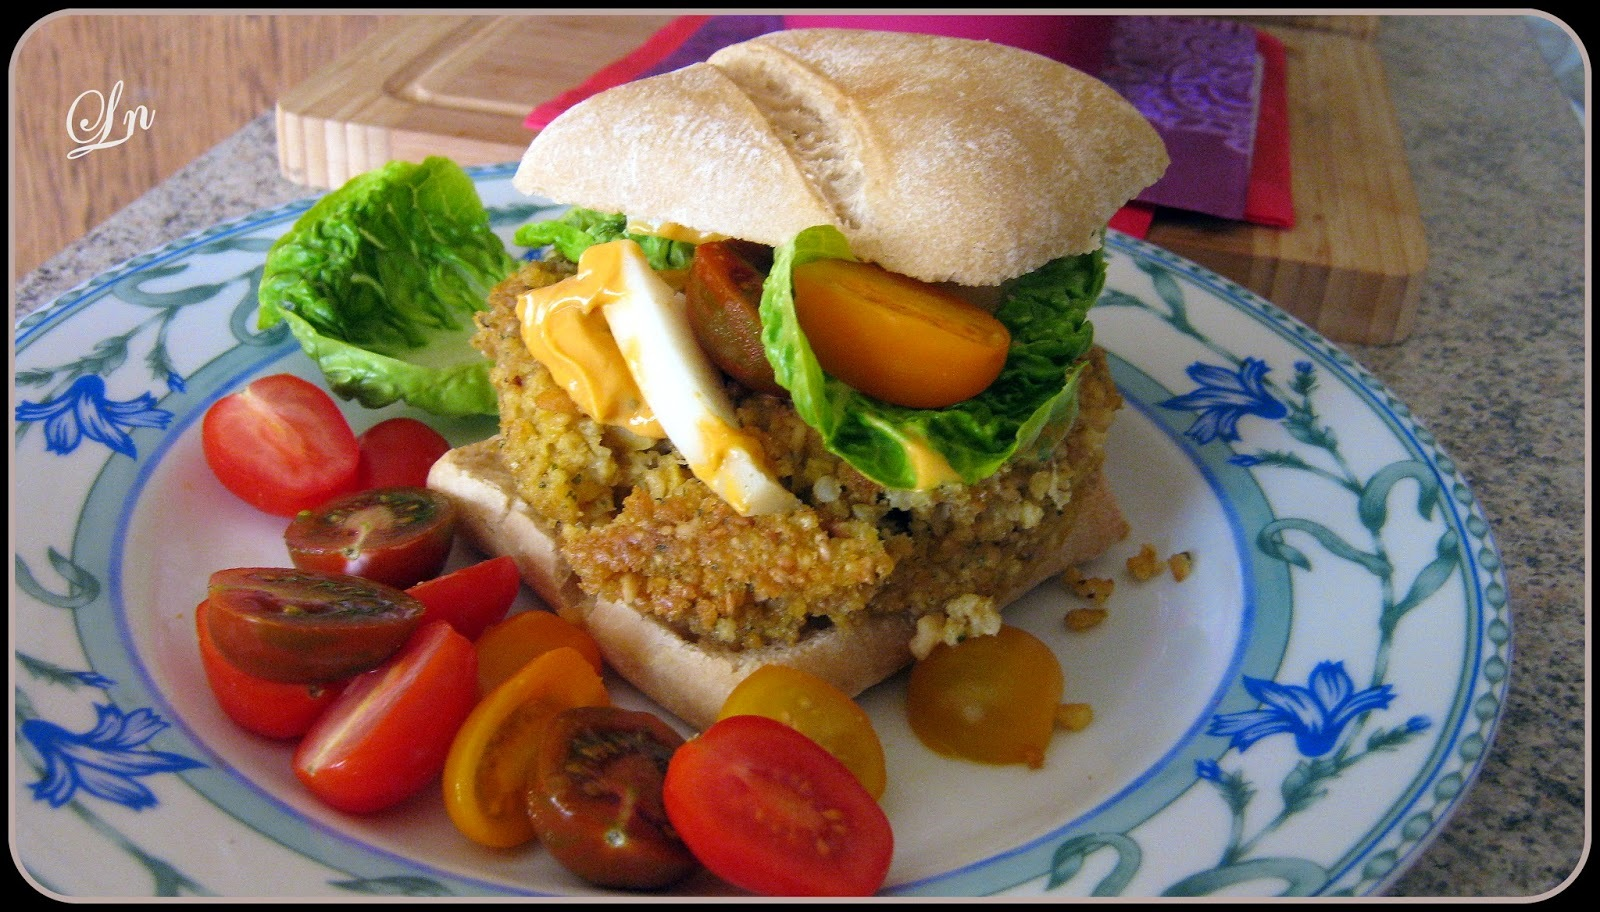 Battle Food#31 Petites graines pour grands gourmands : burgers de pois chiches et de millet